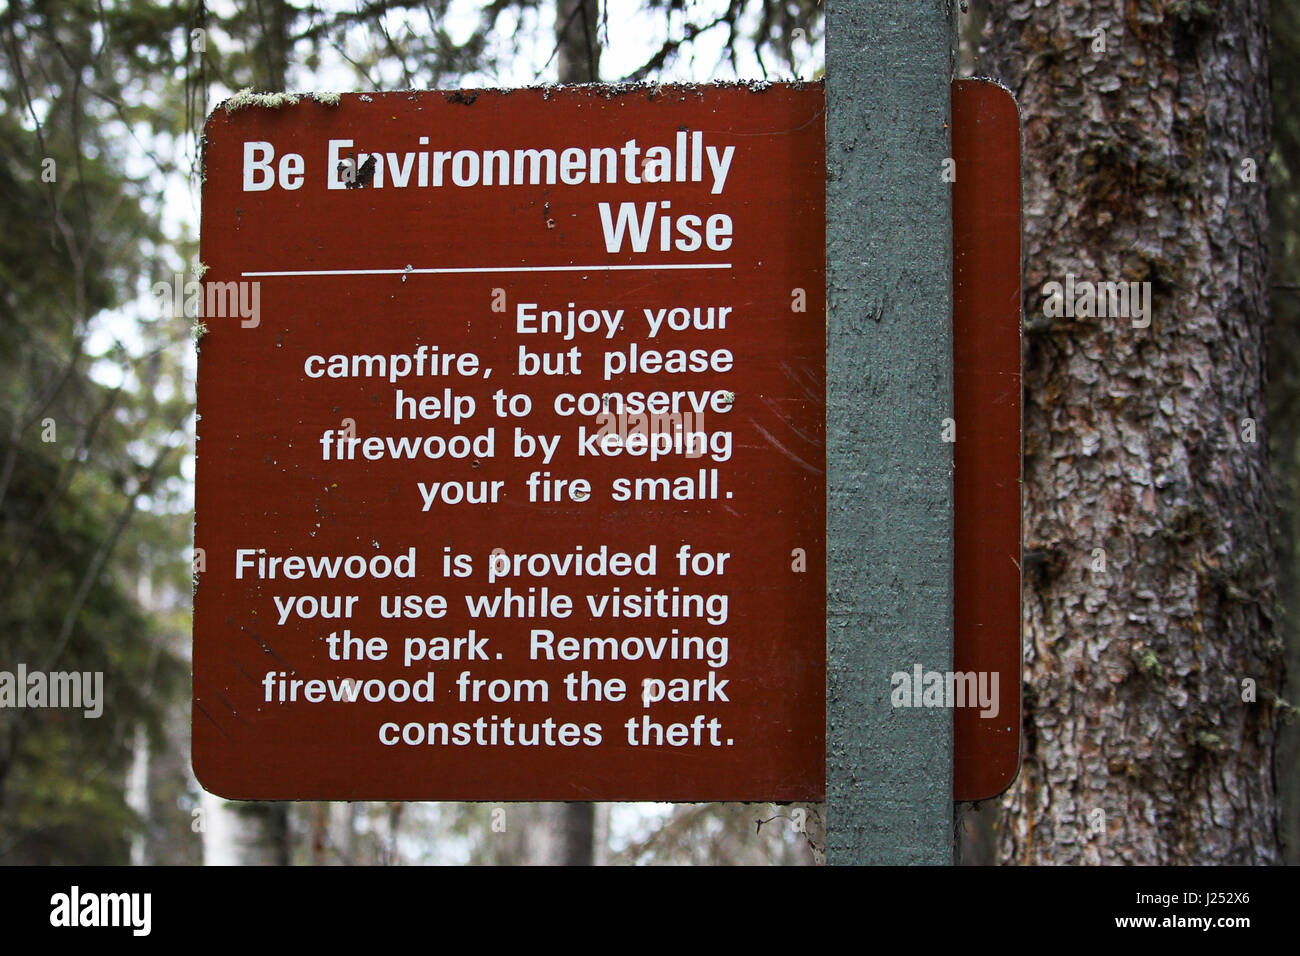 Be Environmentally Wise sign asking to conserve wood. - Stock Image